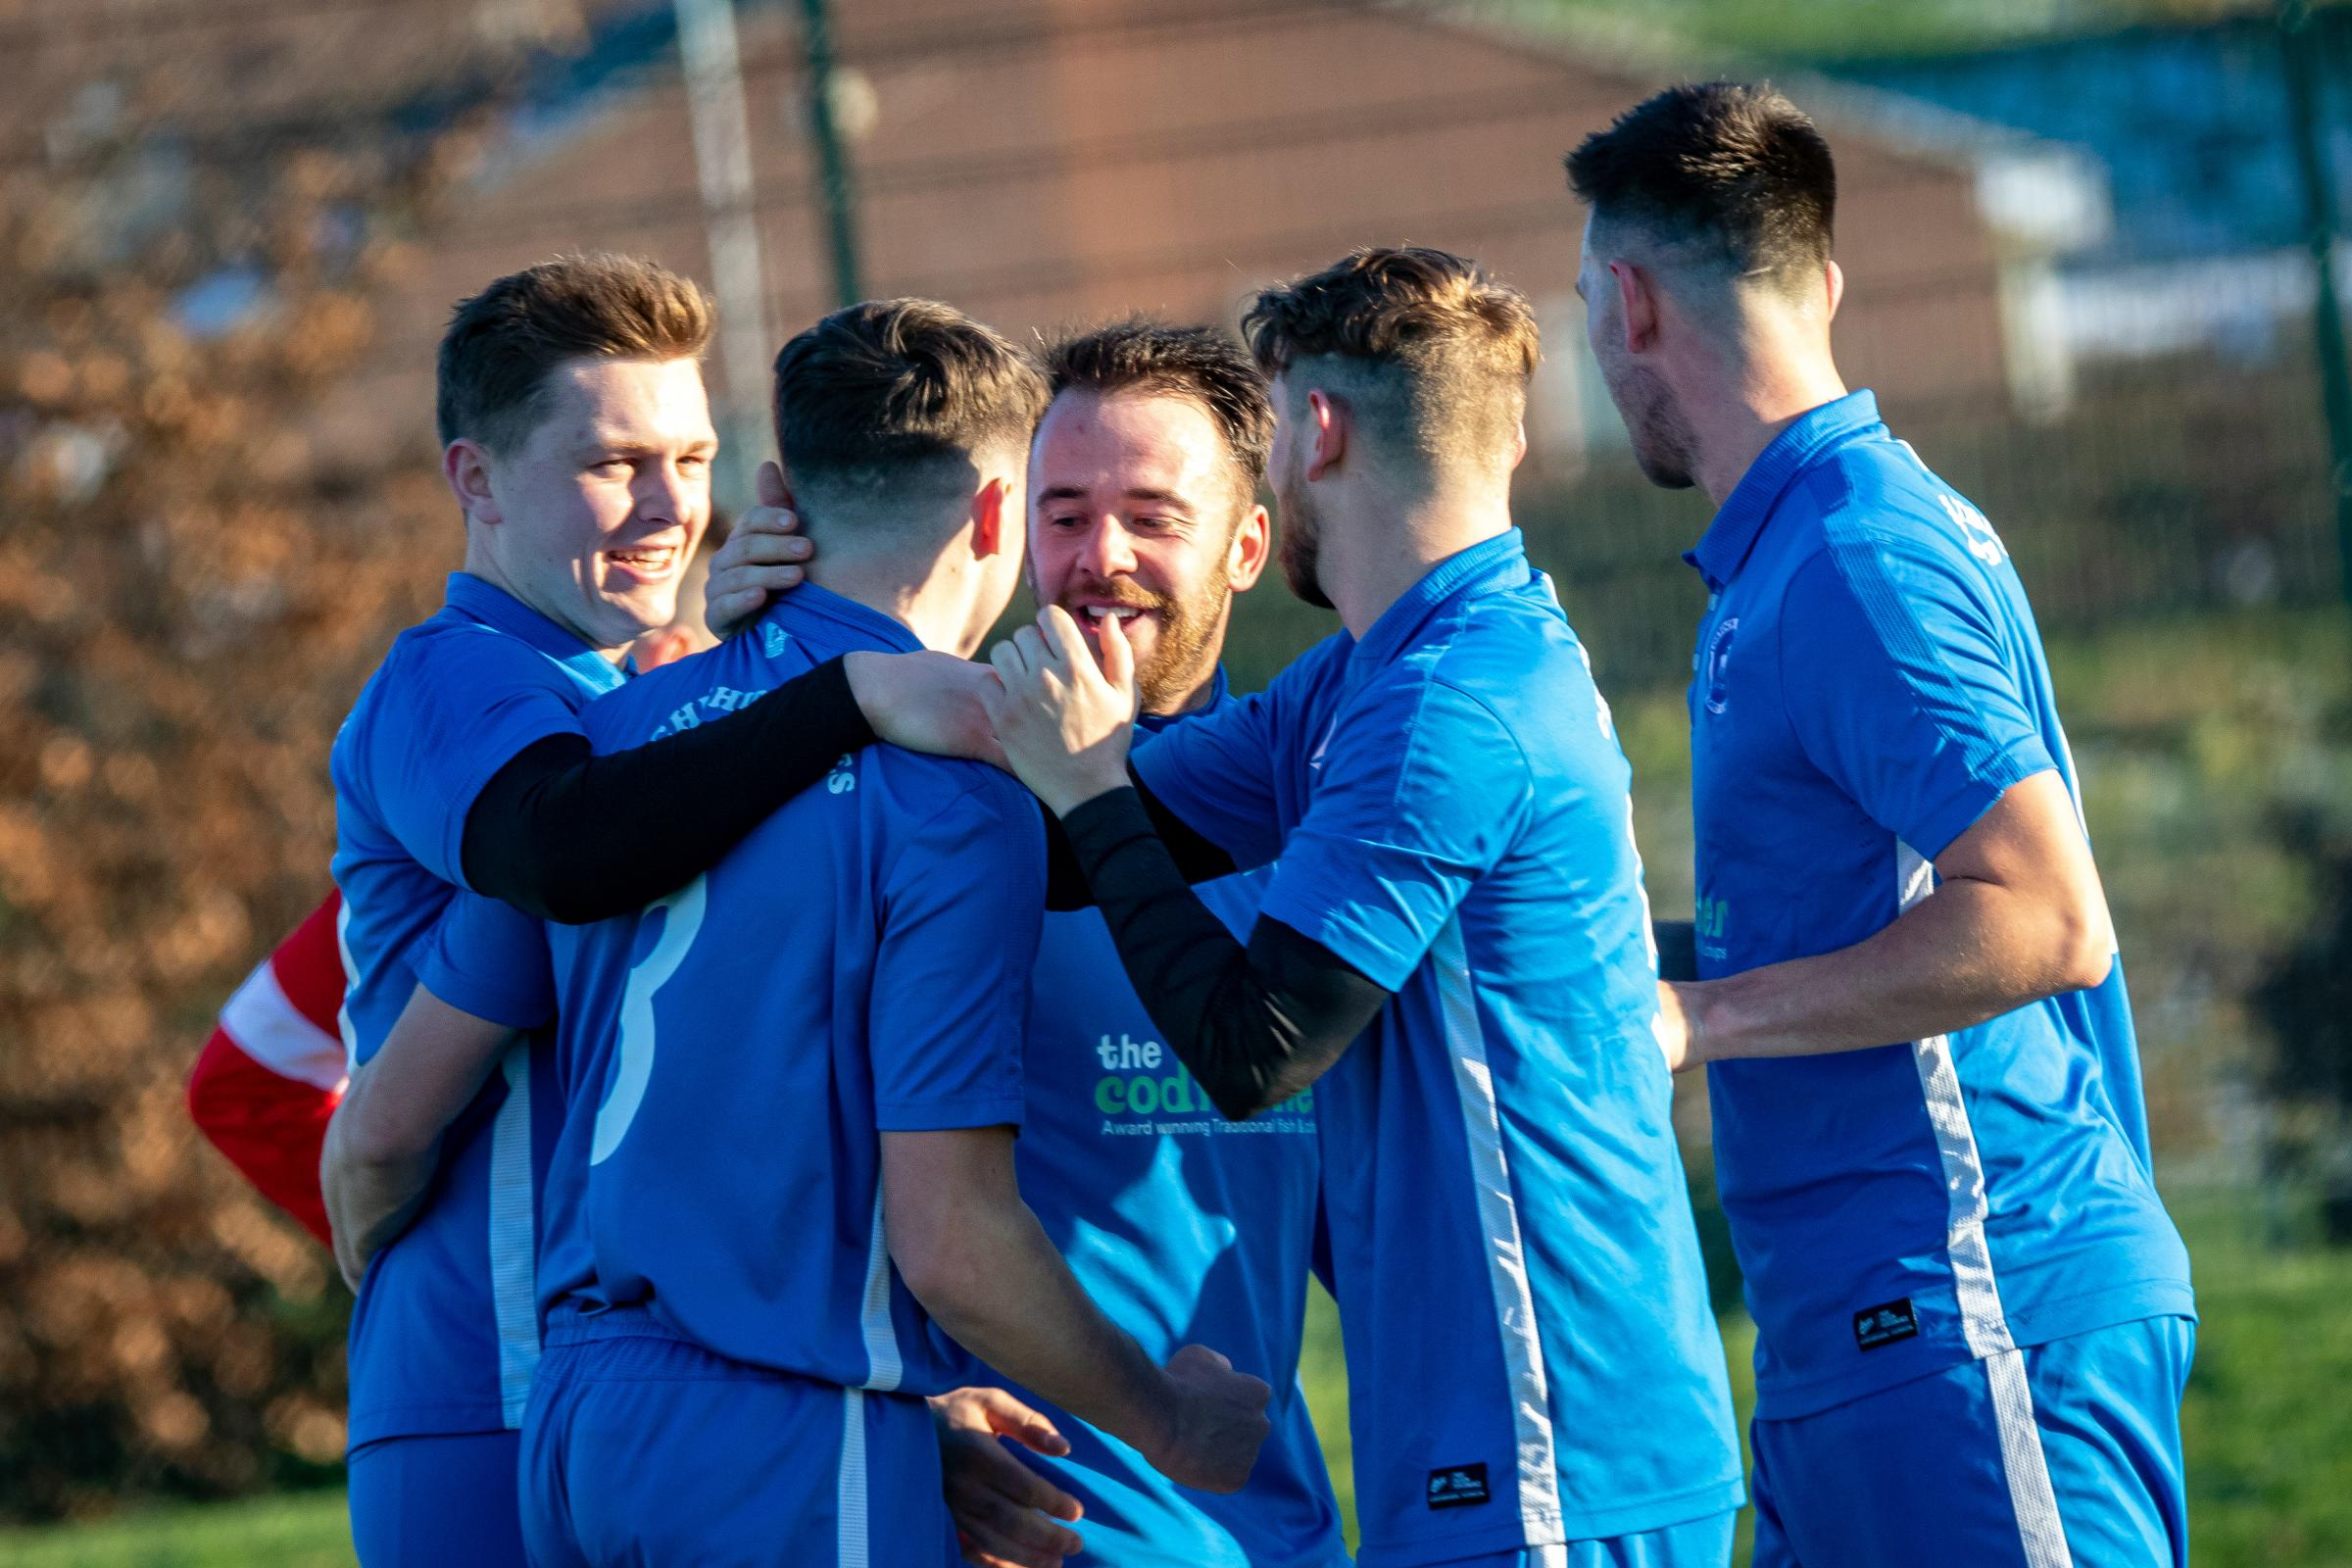 Lostock Gralam's players had reason to celebrate after putting four goals past neighbours Winnington Avenue 1994 in a Mid-Cheshire District FA Saturday Challenge Cup quarter-finals encounter at Moss Farm last weekend. Picture: Karl Brooks Photography